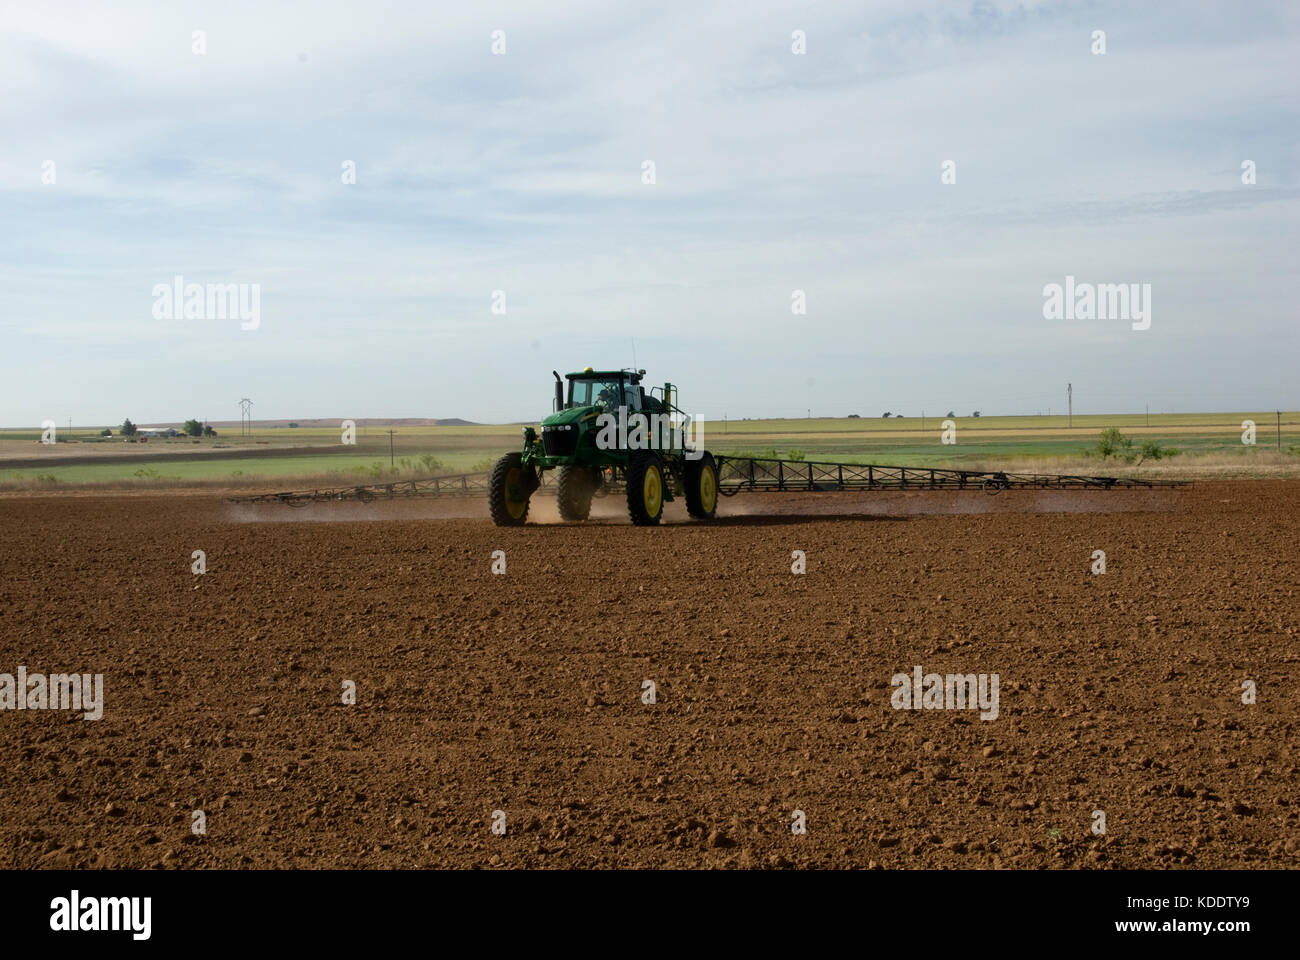 JOHN DEERE TRACTOR SPRAYING PLOWED GROUND WITH PRE-EMERGE HERBICIDE - Stock Image